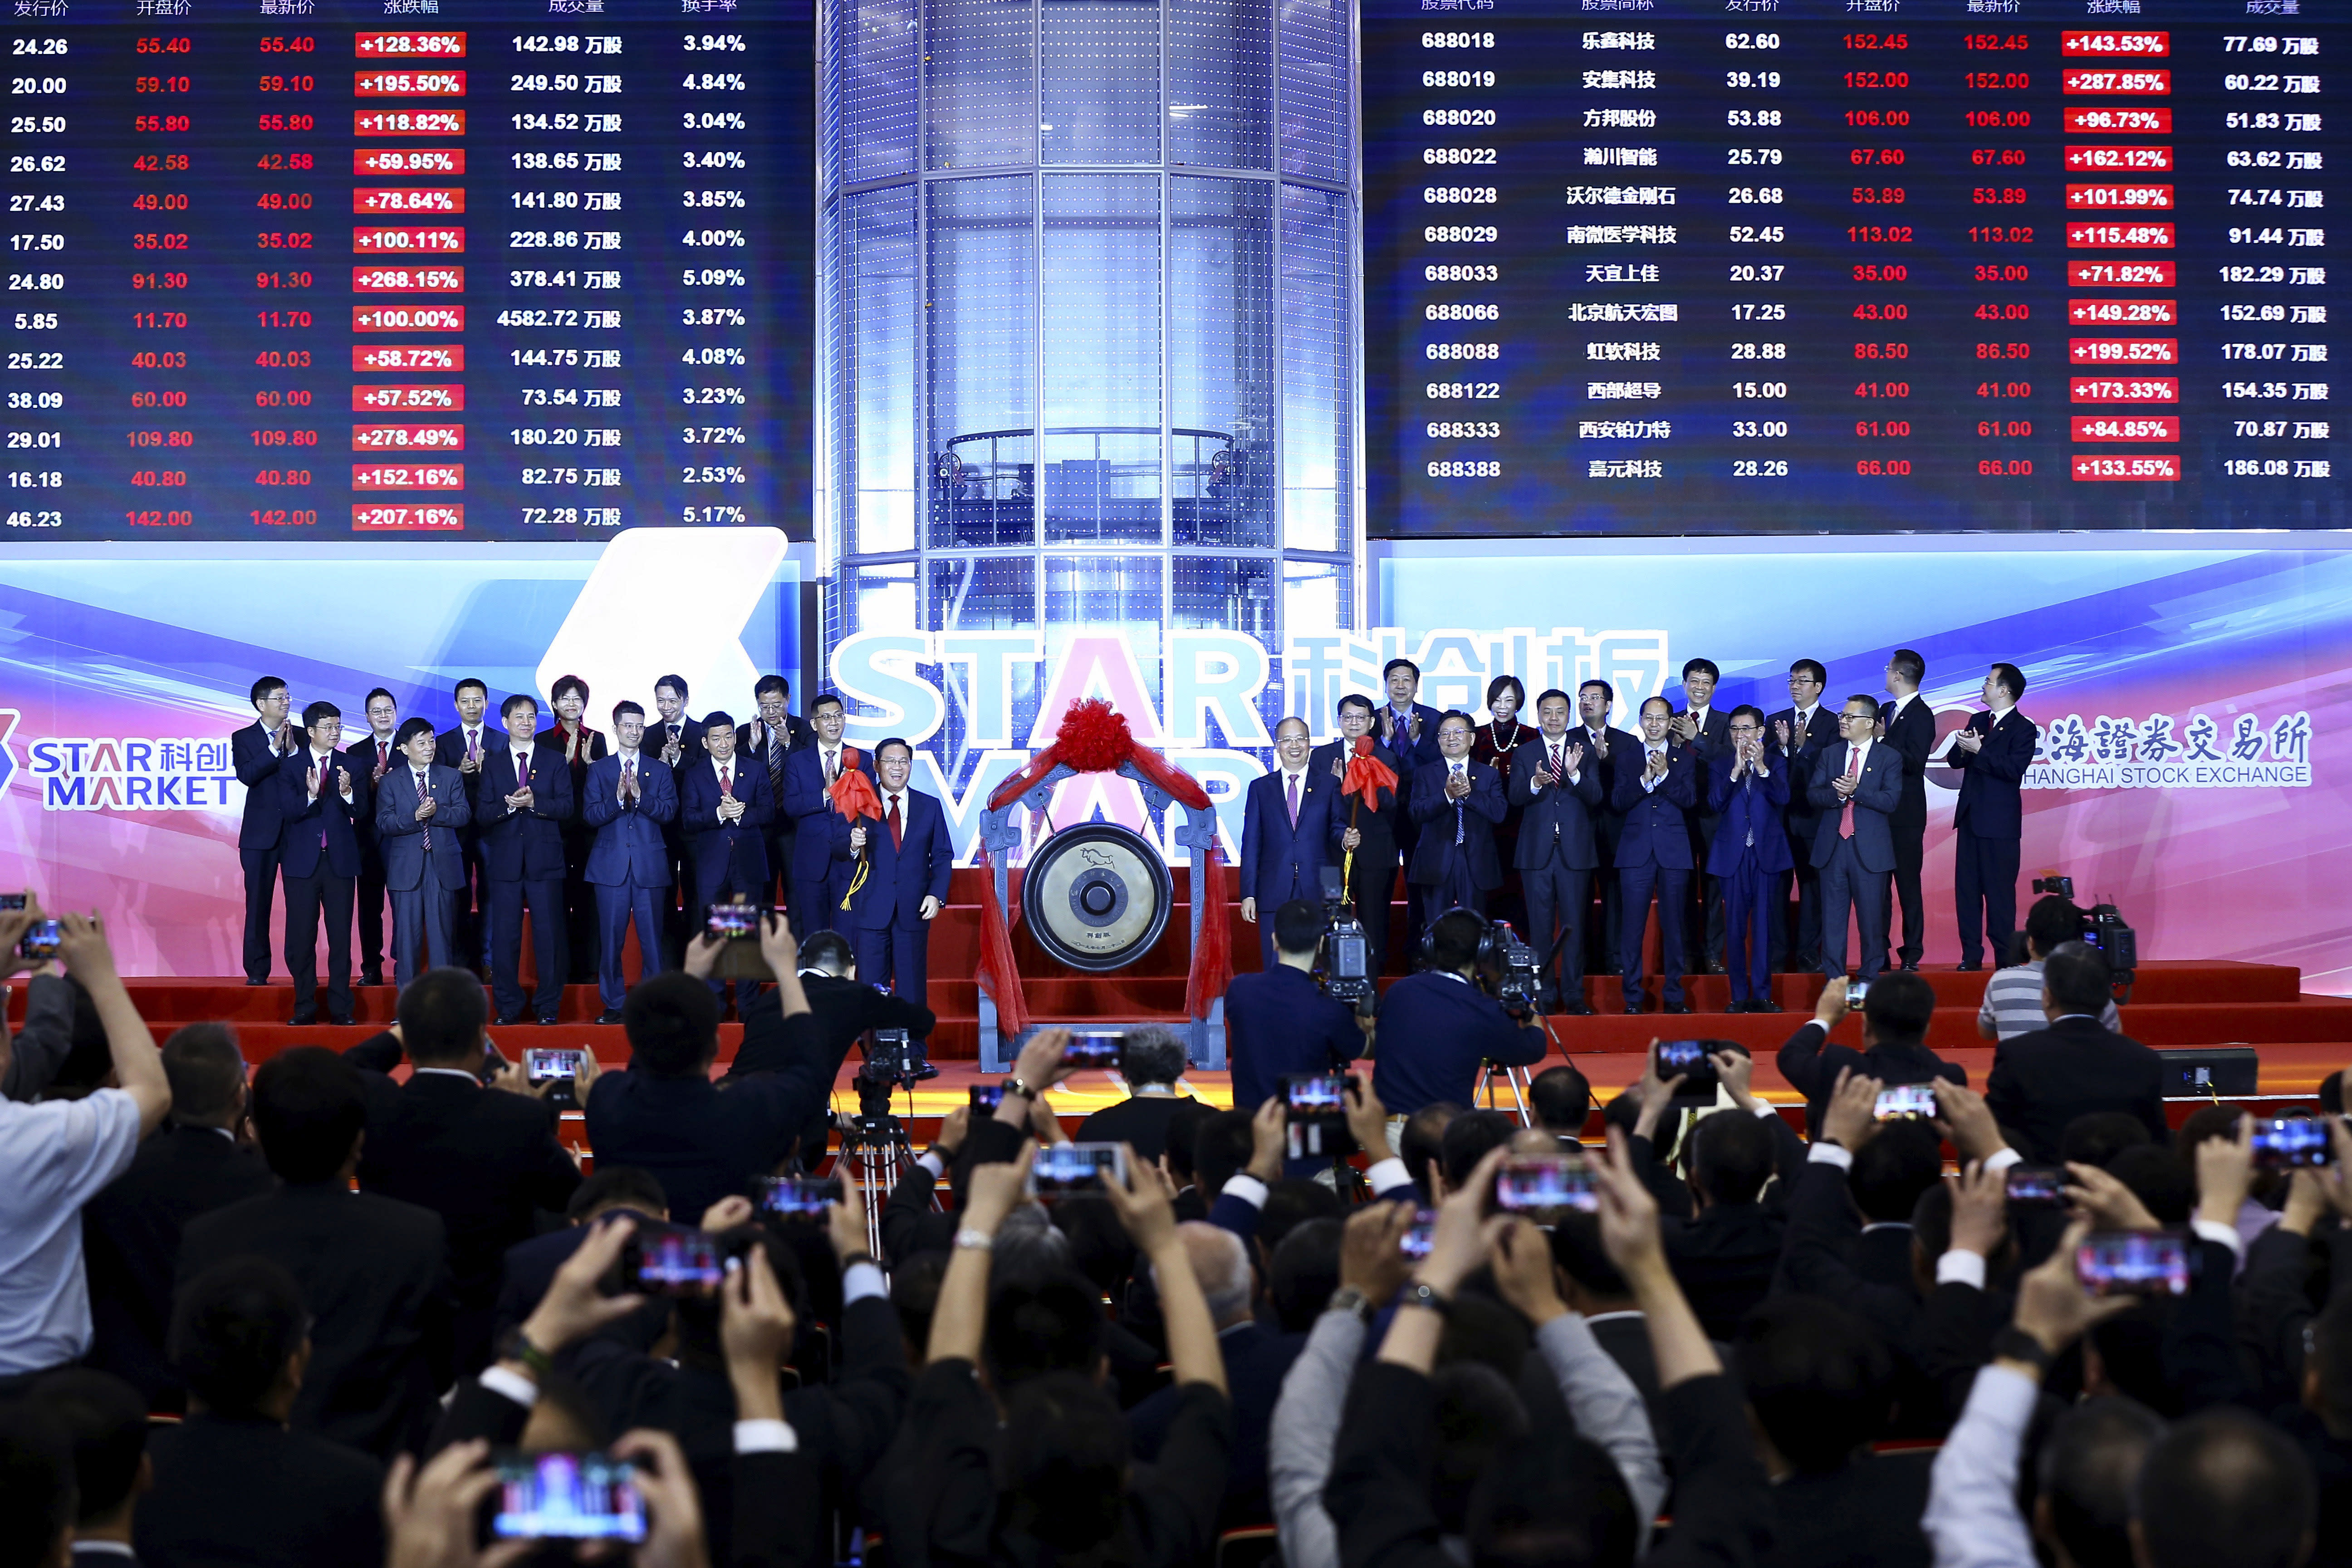 Li Qiang, center left, Shanghai's Party chief, and Yi Huiman, center right, chairman at China Securities Regulatory Commission, and the heads of 25 companies celebrate the launch of the SSE STAR Market in the hall of Shanghai Securities Exchange in Shanghai, China, Monday, July 22, 2019. Trading started Monday on a Chinese stock market for high-tech companies that play a key role in official development plans that are straining relations with Washington. (Chinatopix via AP)